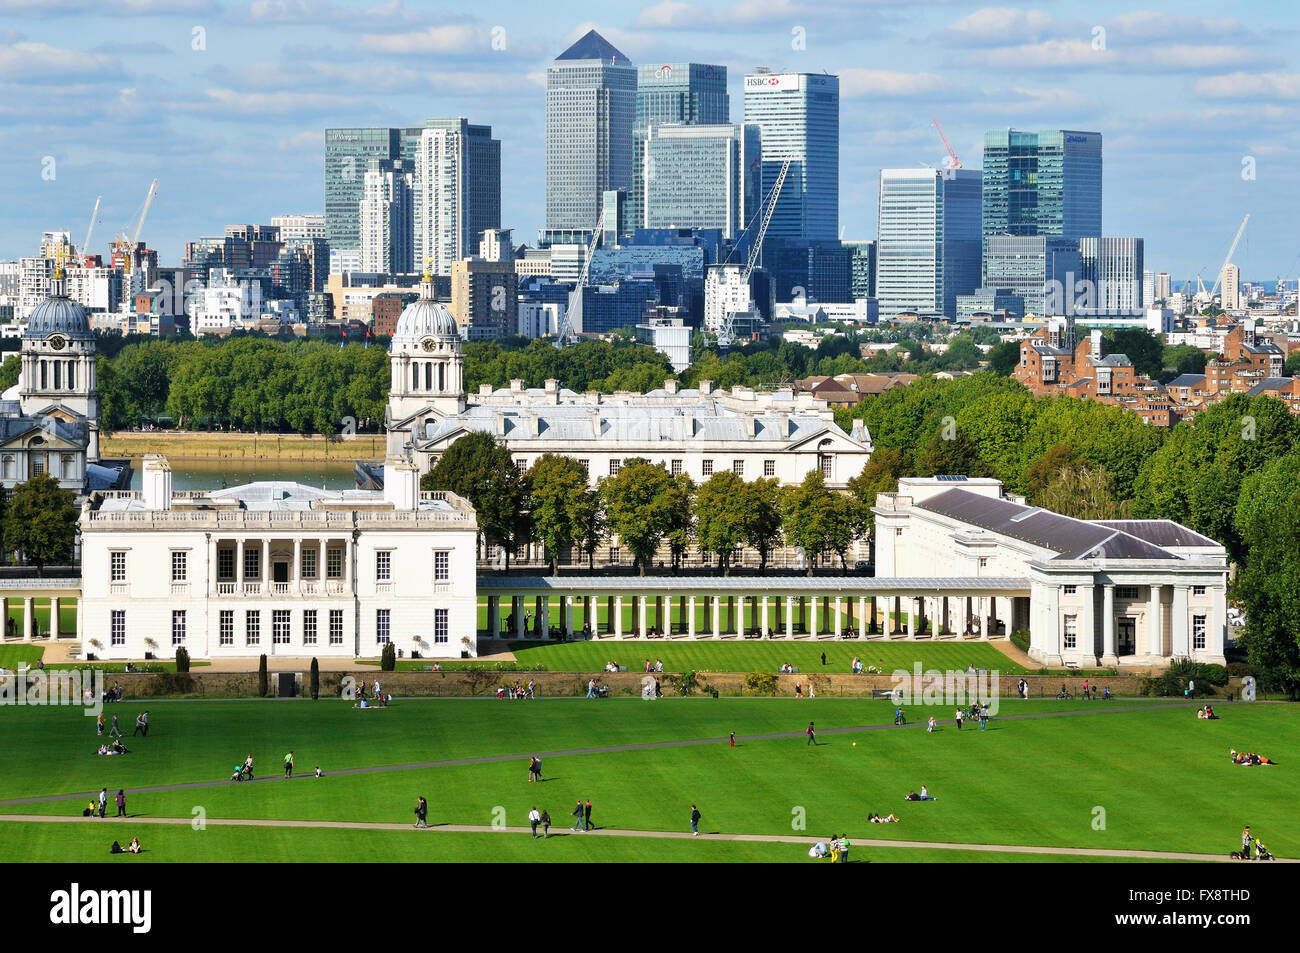 Canary Wharf fom Greenwich Park, London UK, with Royal Naval College buildings - Stock Image